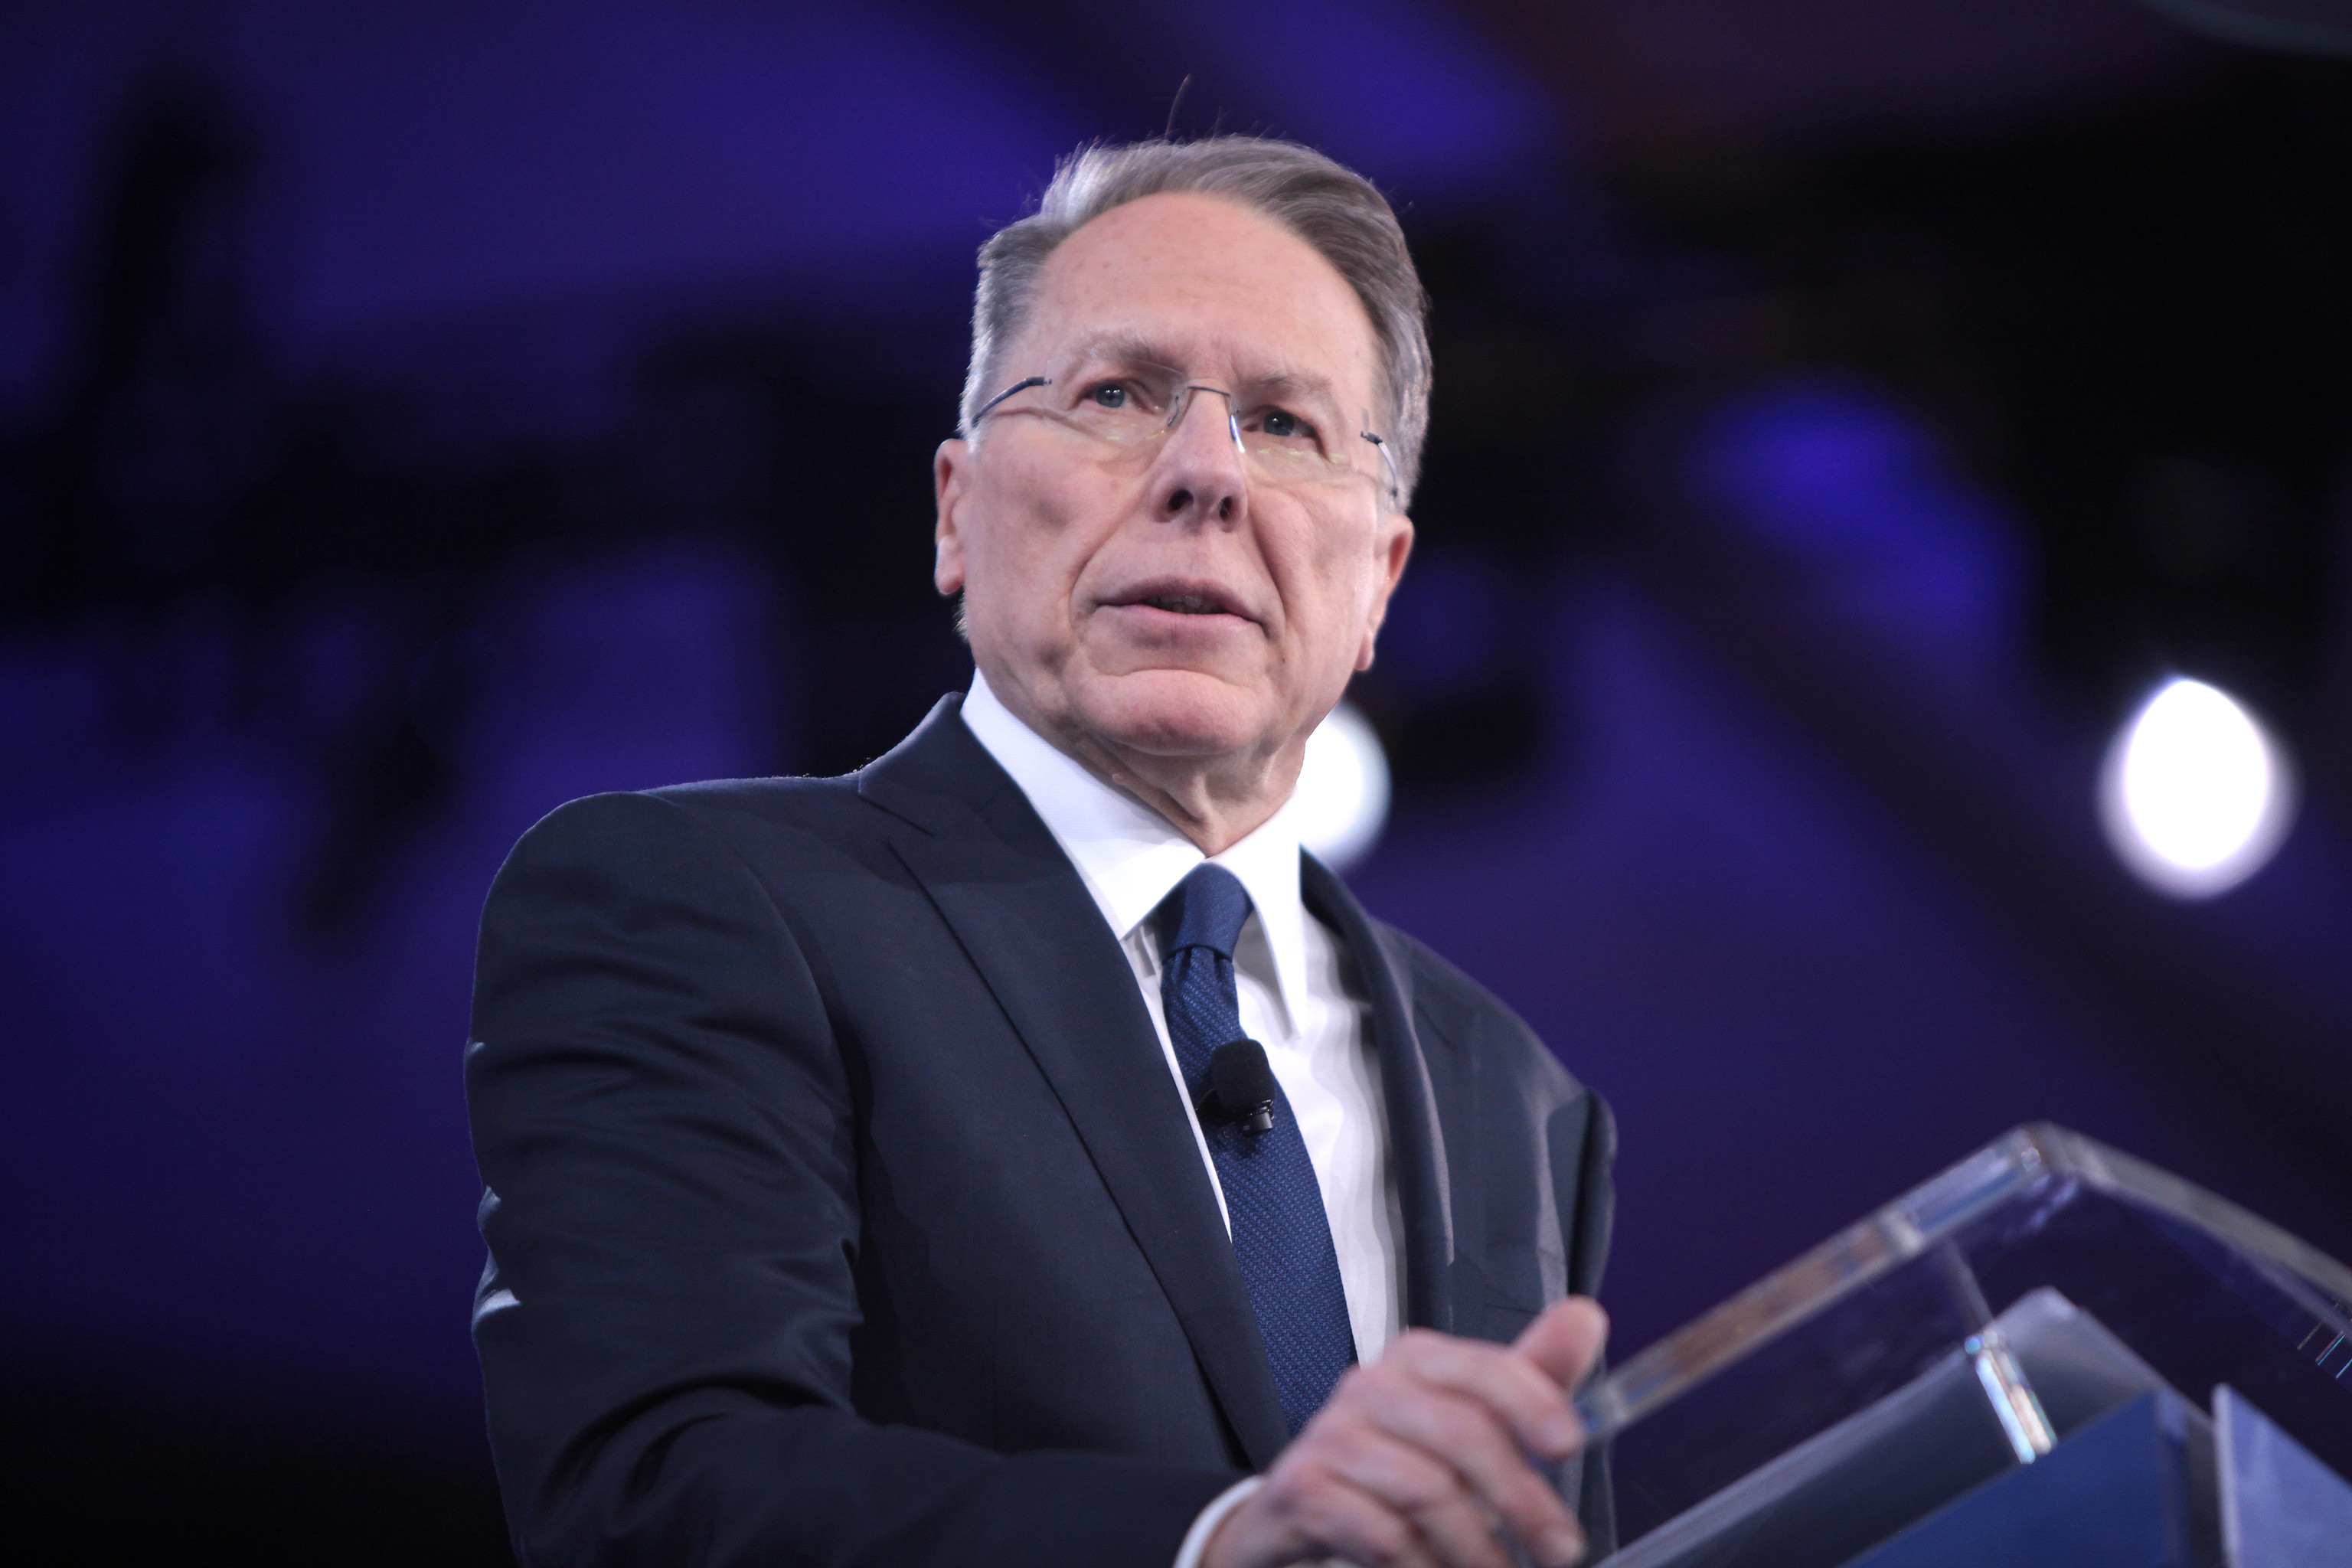 Wayne LaPierre stands at the lectern and looks off-camera during his remarks.